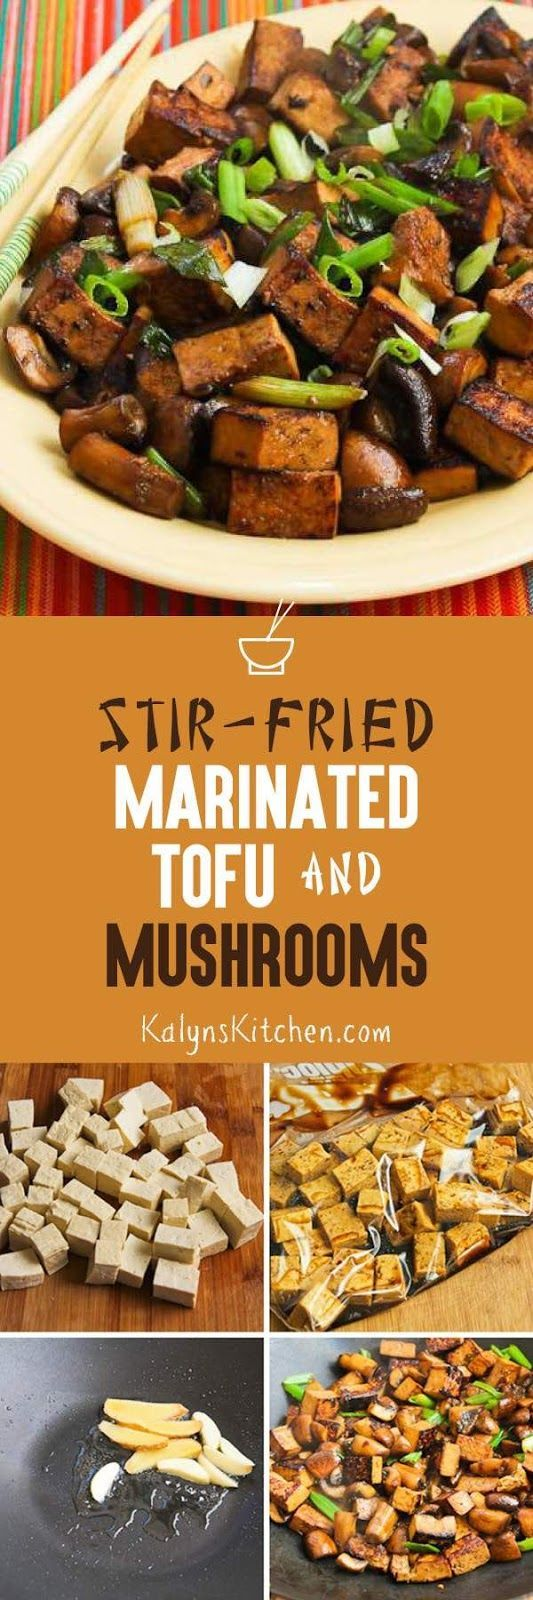 Stir-Fried Marinated Tofu and Mushrooms is a delicious dish that's meatless, low-carb, gluten-free, and it can be South Beach Diet friendly if you limit serving size. If you're not that experienced at stir-fry cooking, this post has excellent instructions and step-by-step photos.